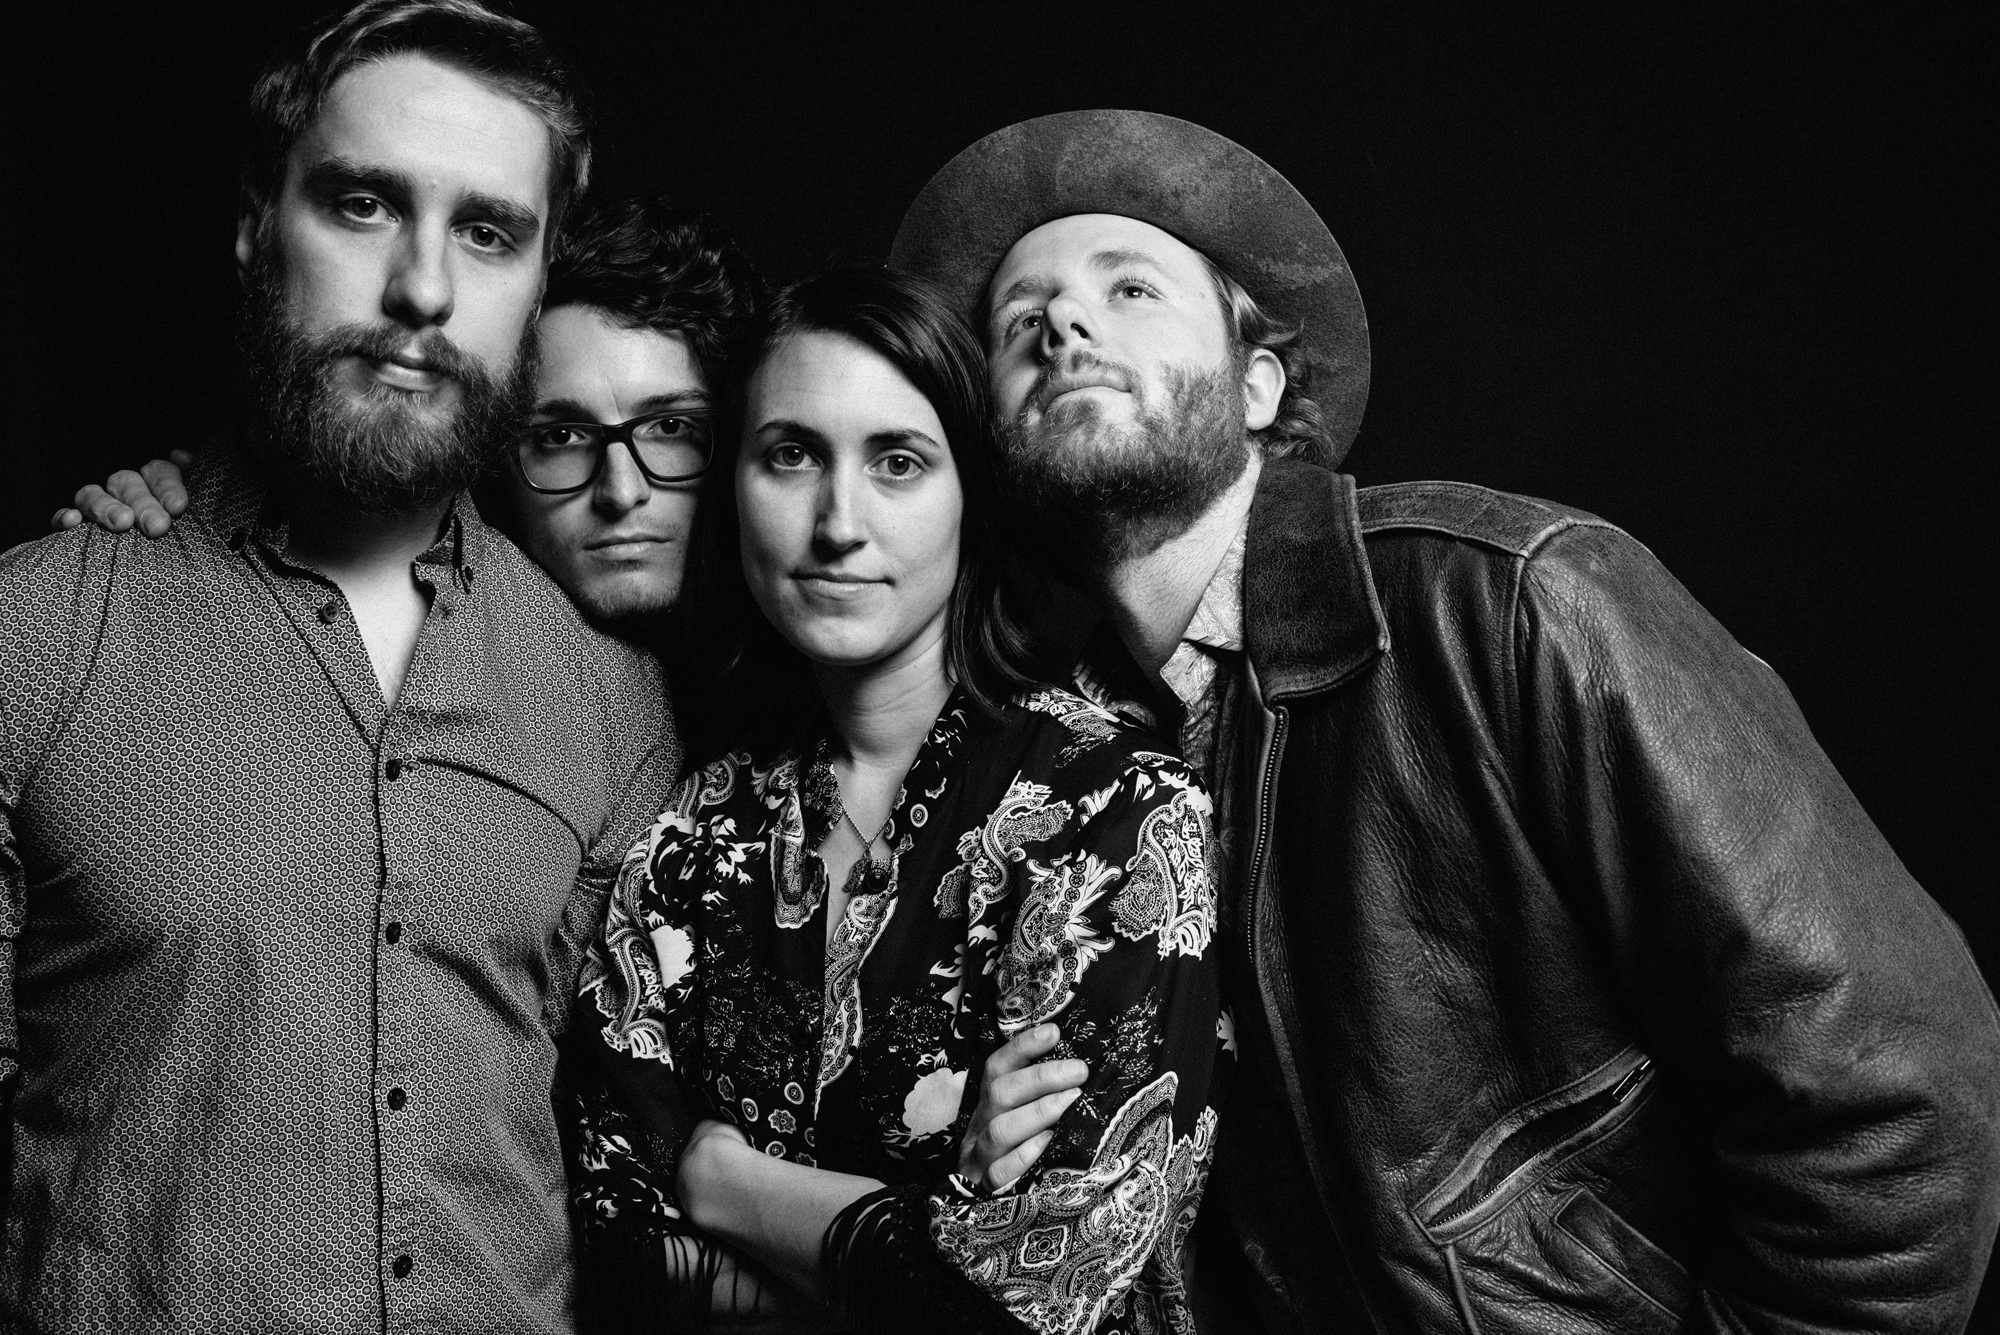 LISTEN: The High Divers, 'Weighing on My Mind'